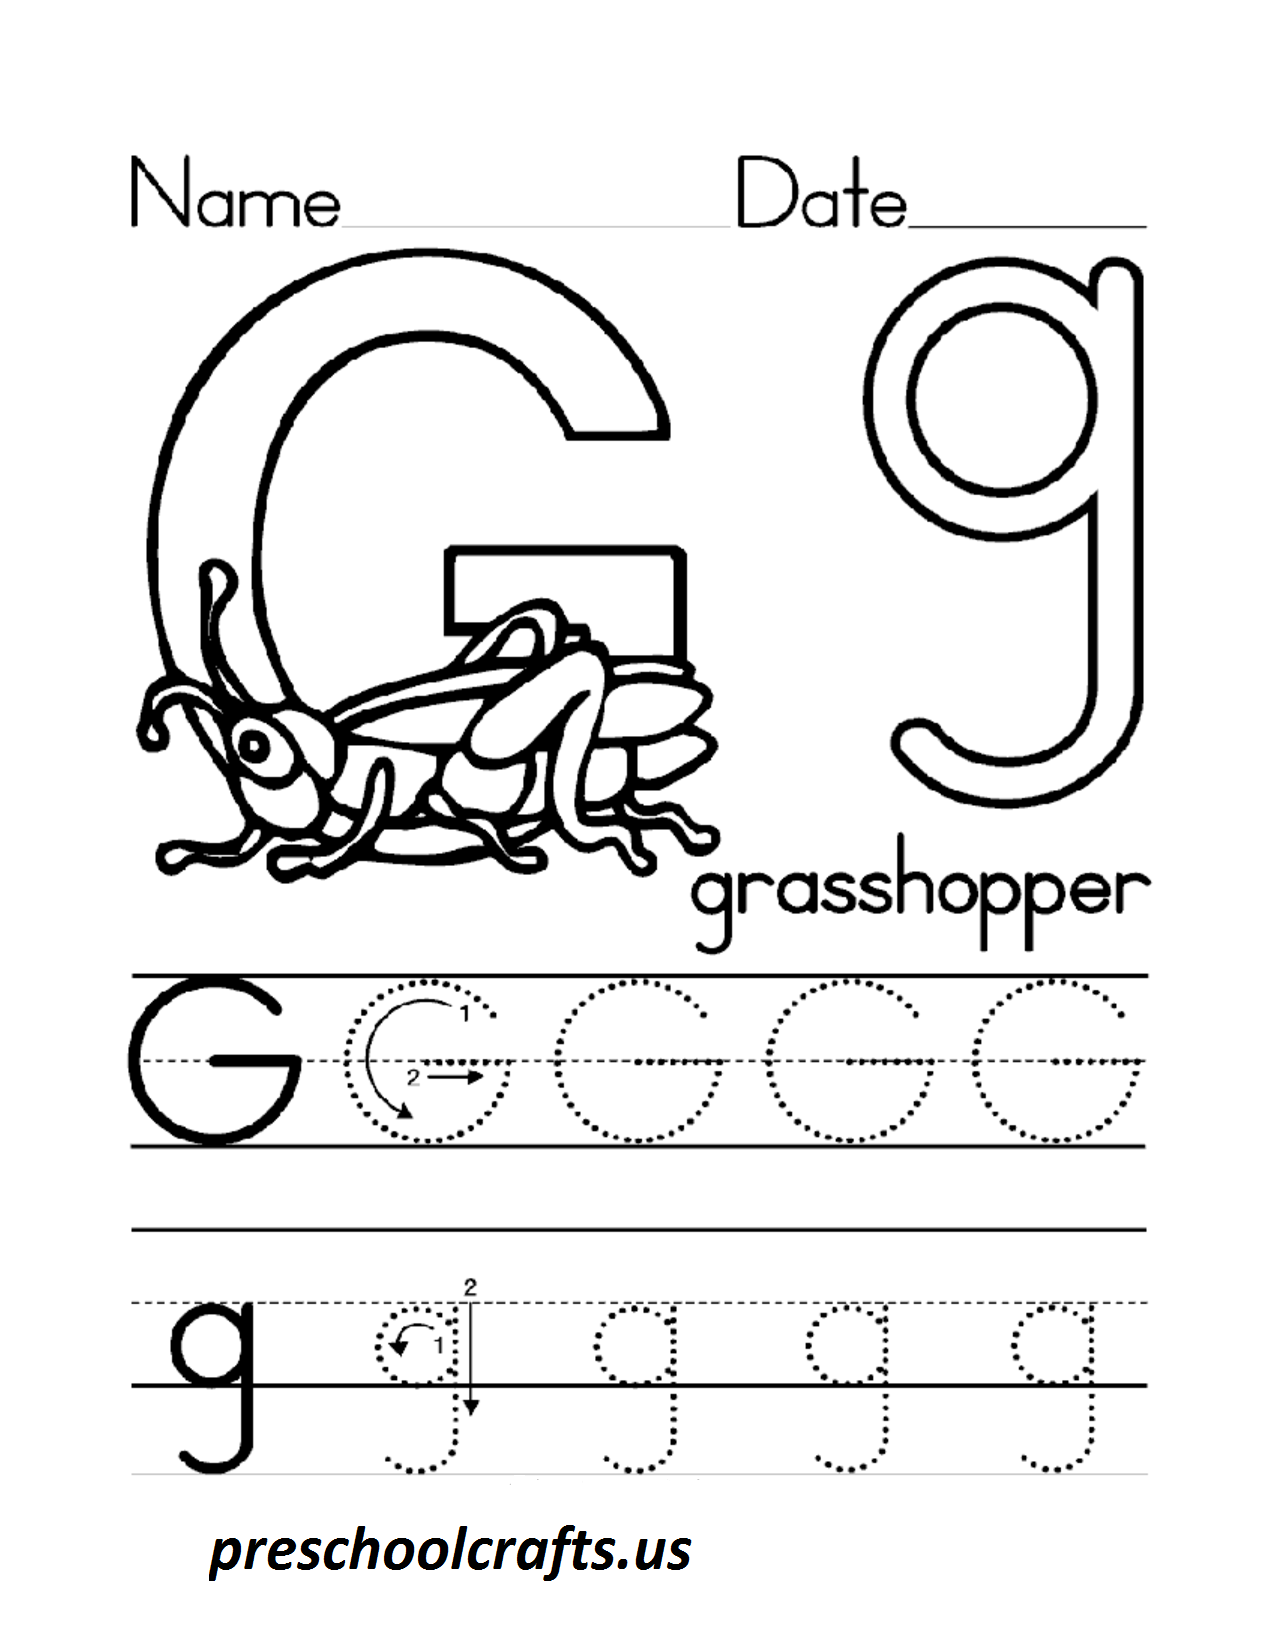 lettergworksheetsforpreschool Preschool Crafts – Letter G Worksheets for Preschool